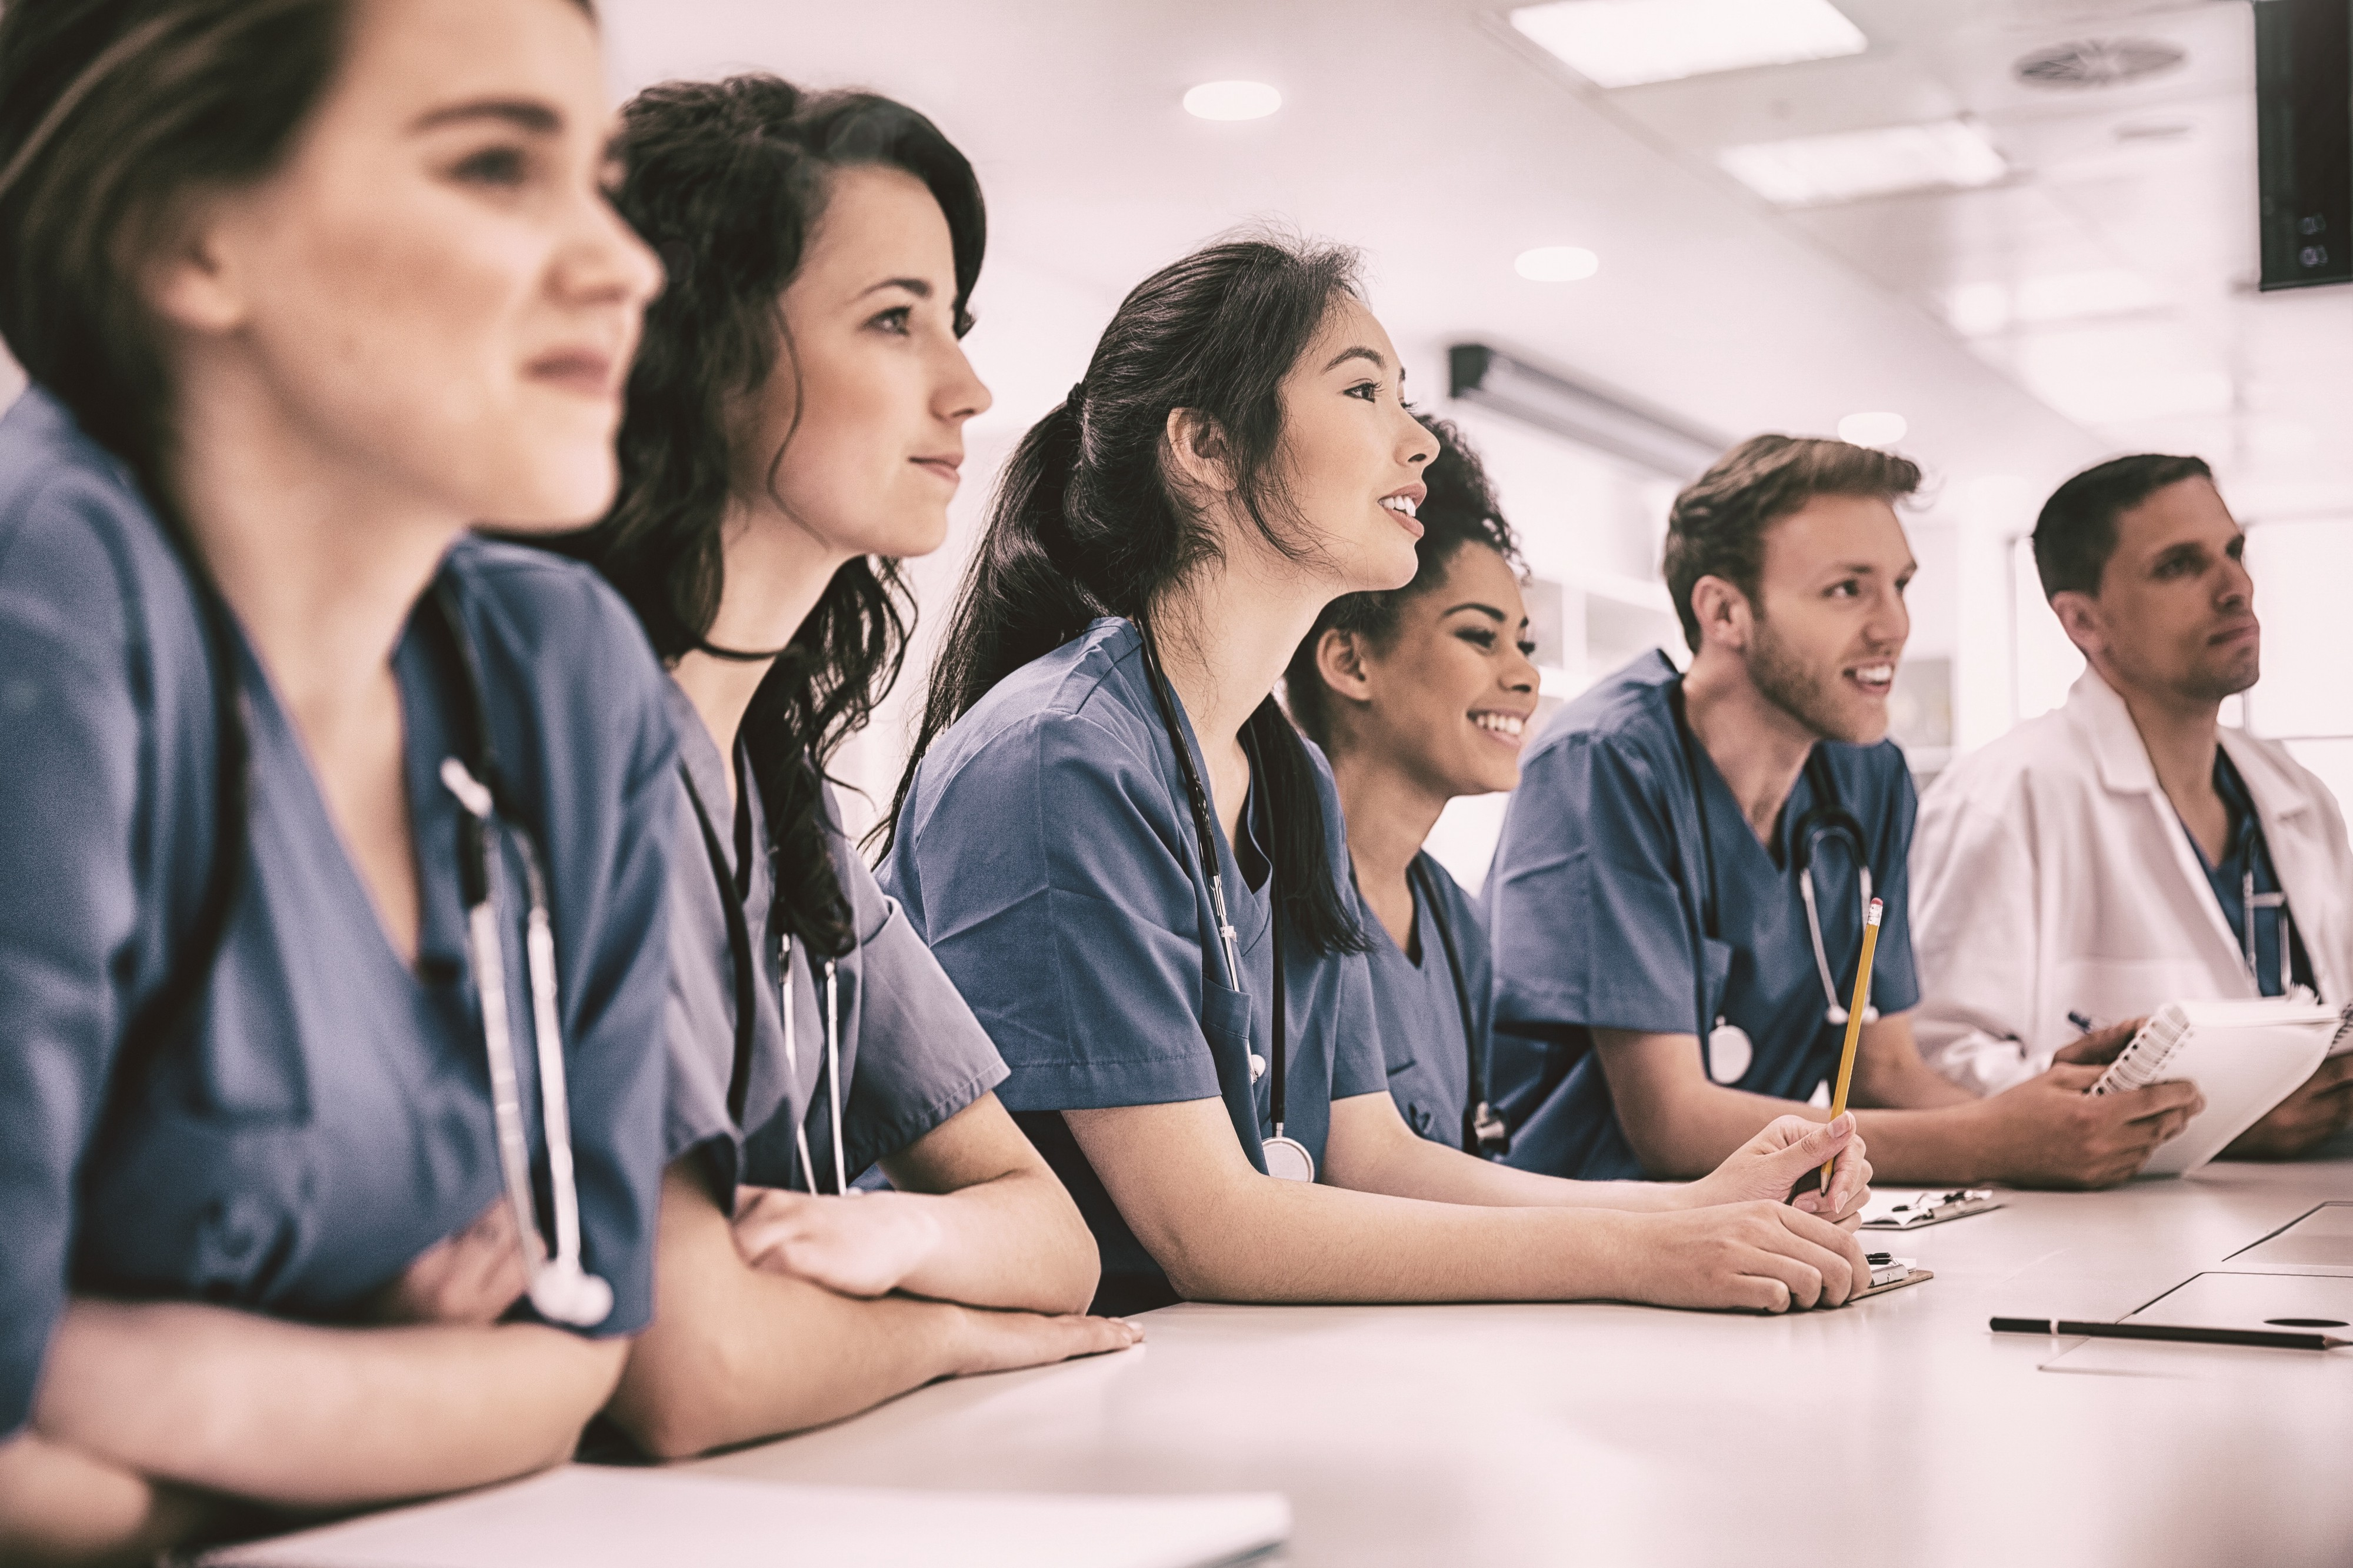 What to Do If You Receive an Inquiry From the USMLE, ECFMG